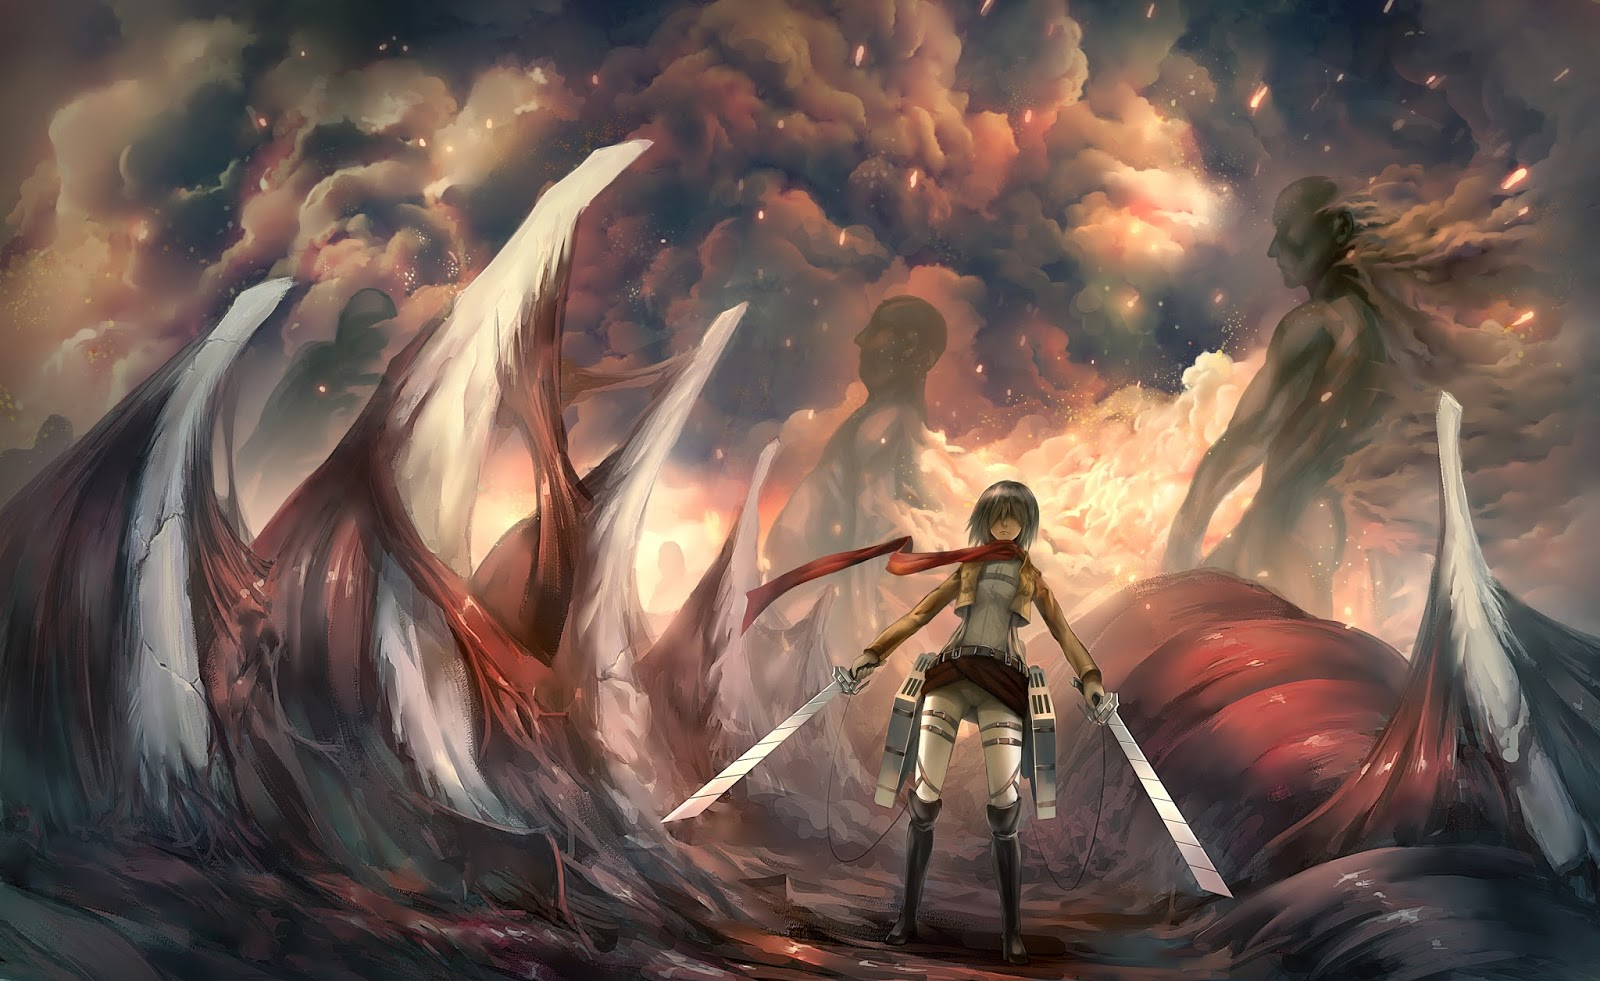 73 Epic Anime Wallpapers On Wallpapersafari